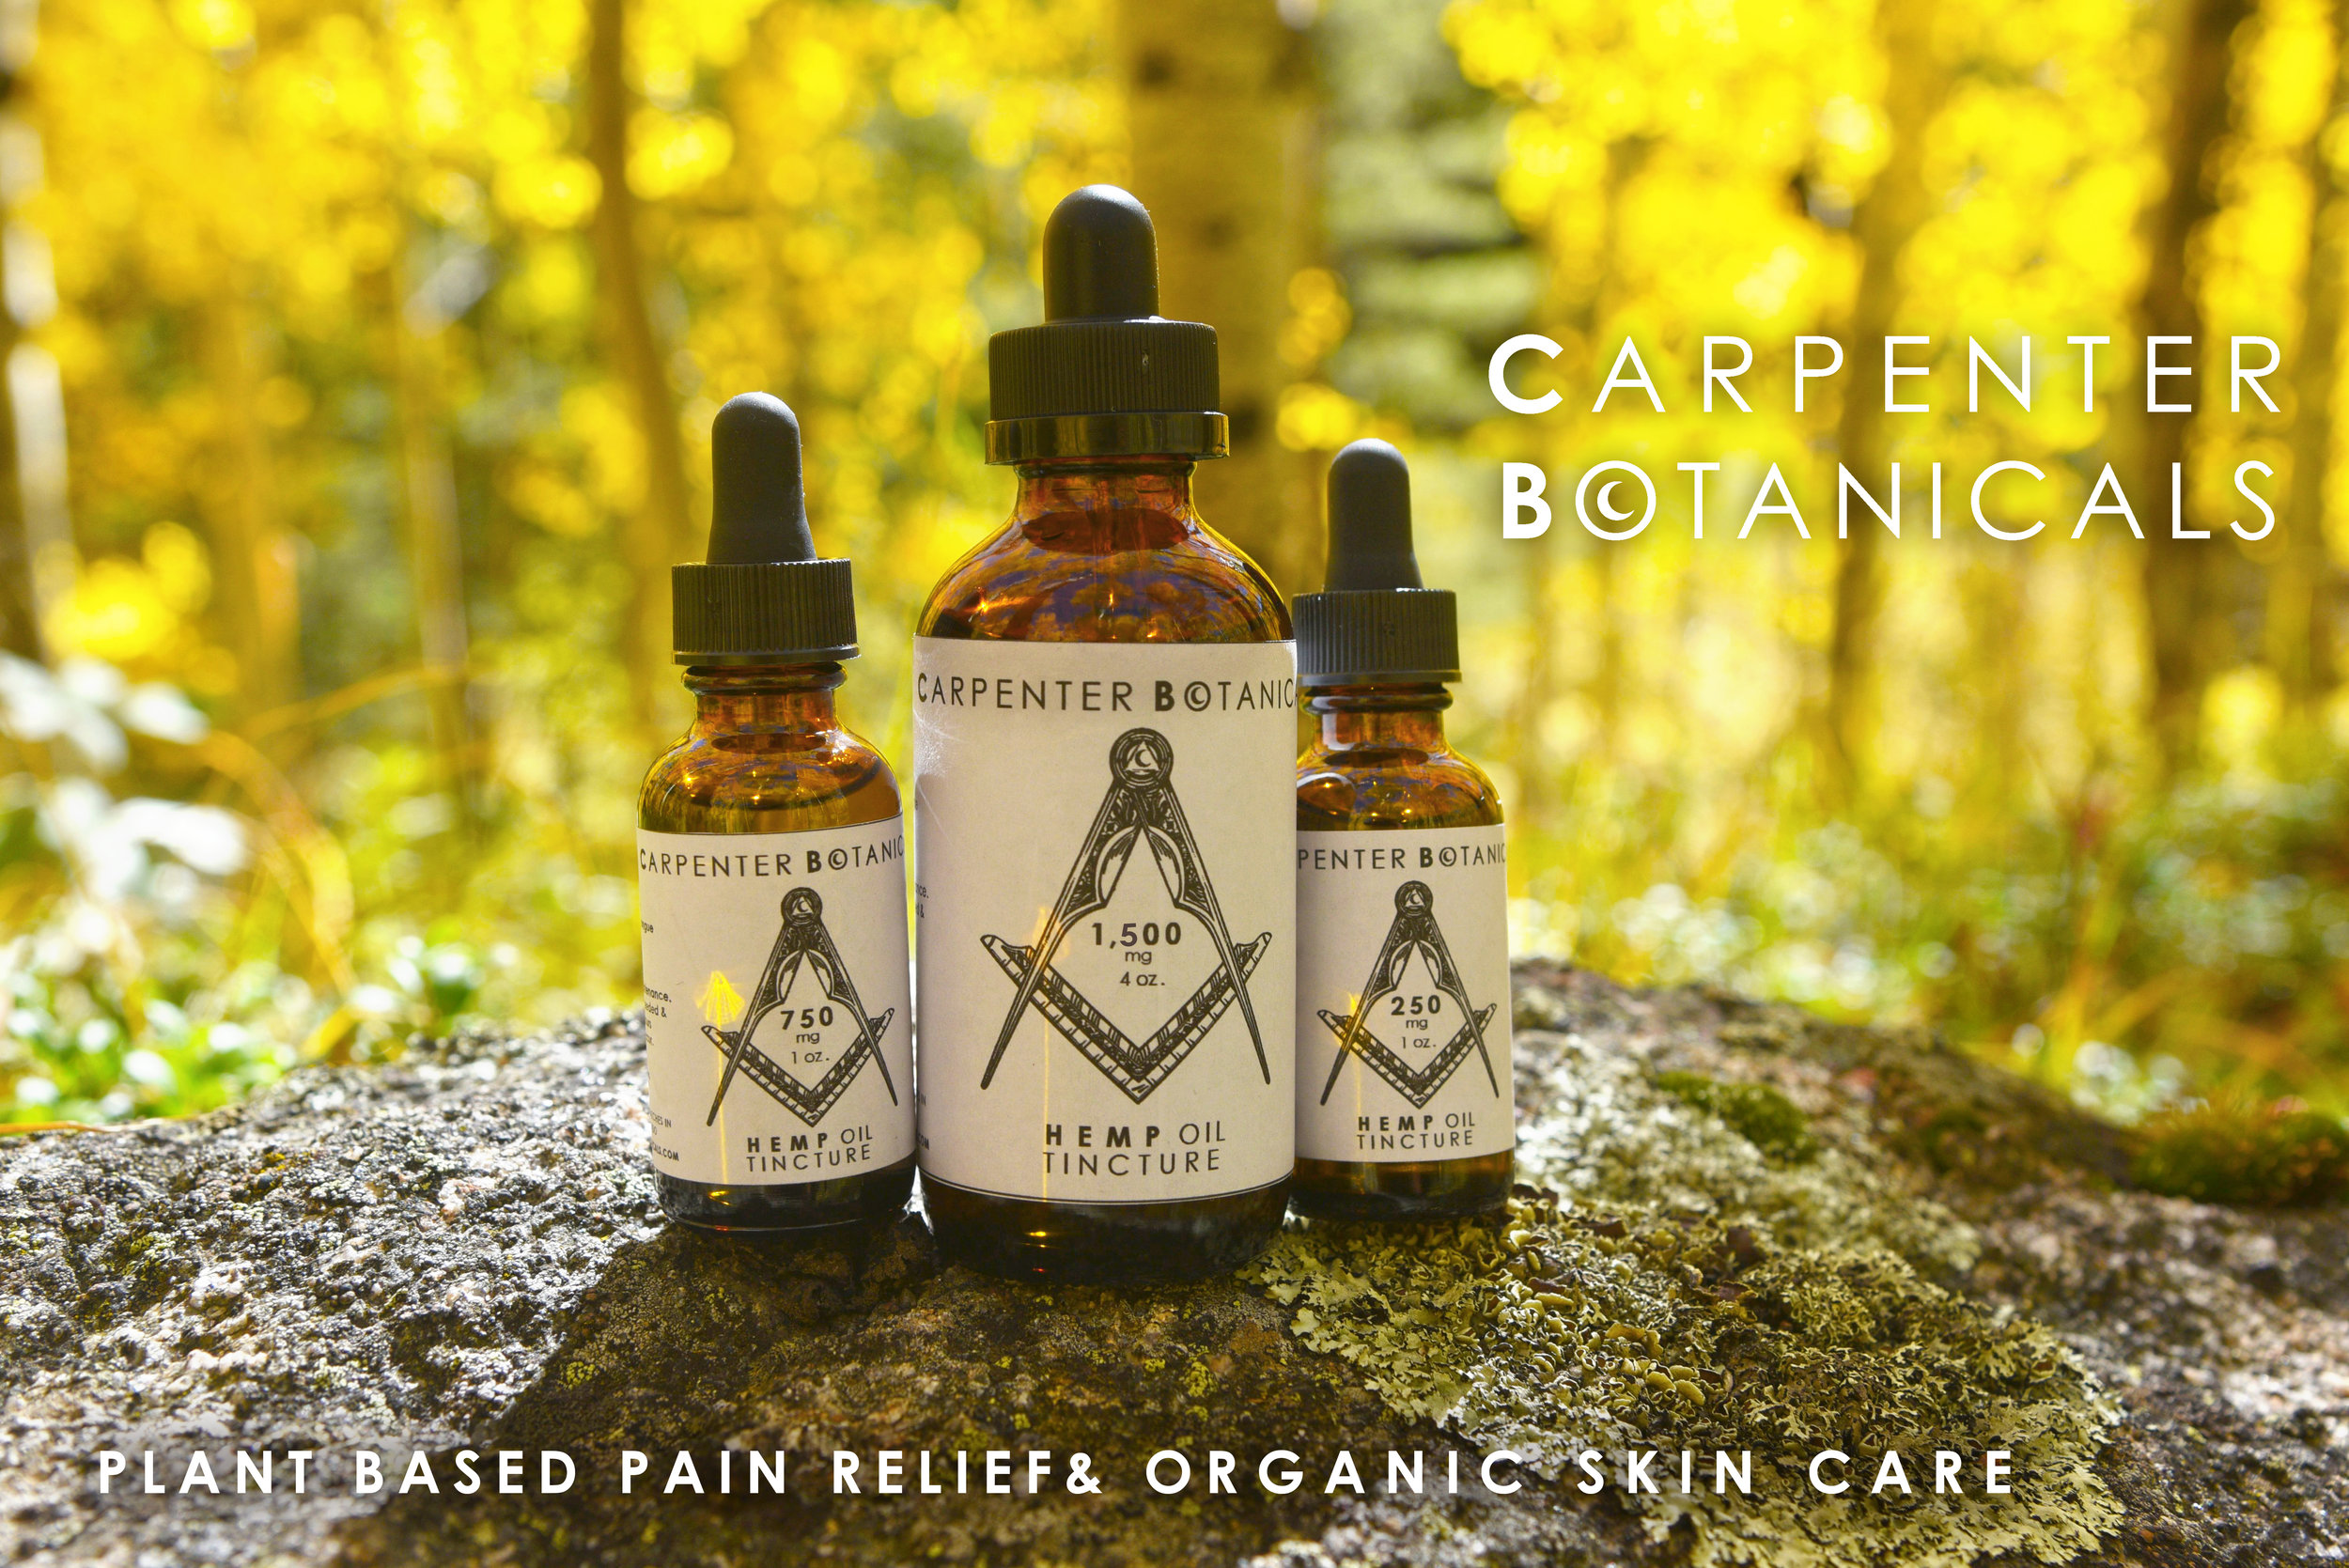 Carpenter Botanicals Plant Based Pain Relief and Organic Skin Care